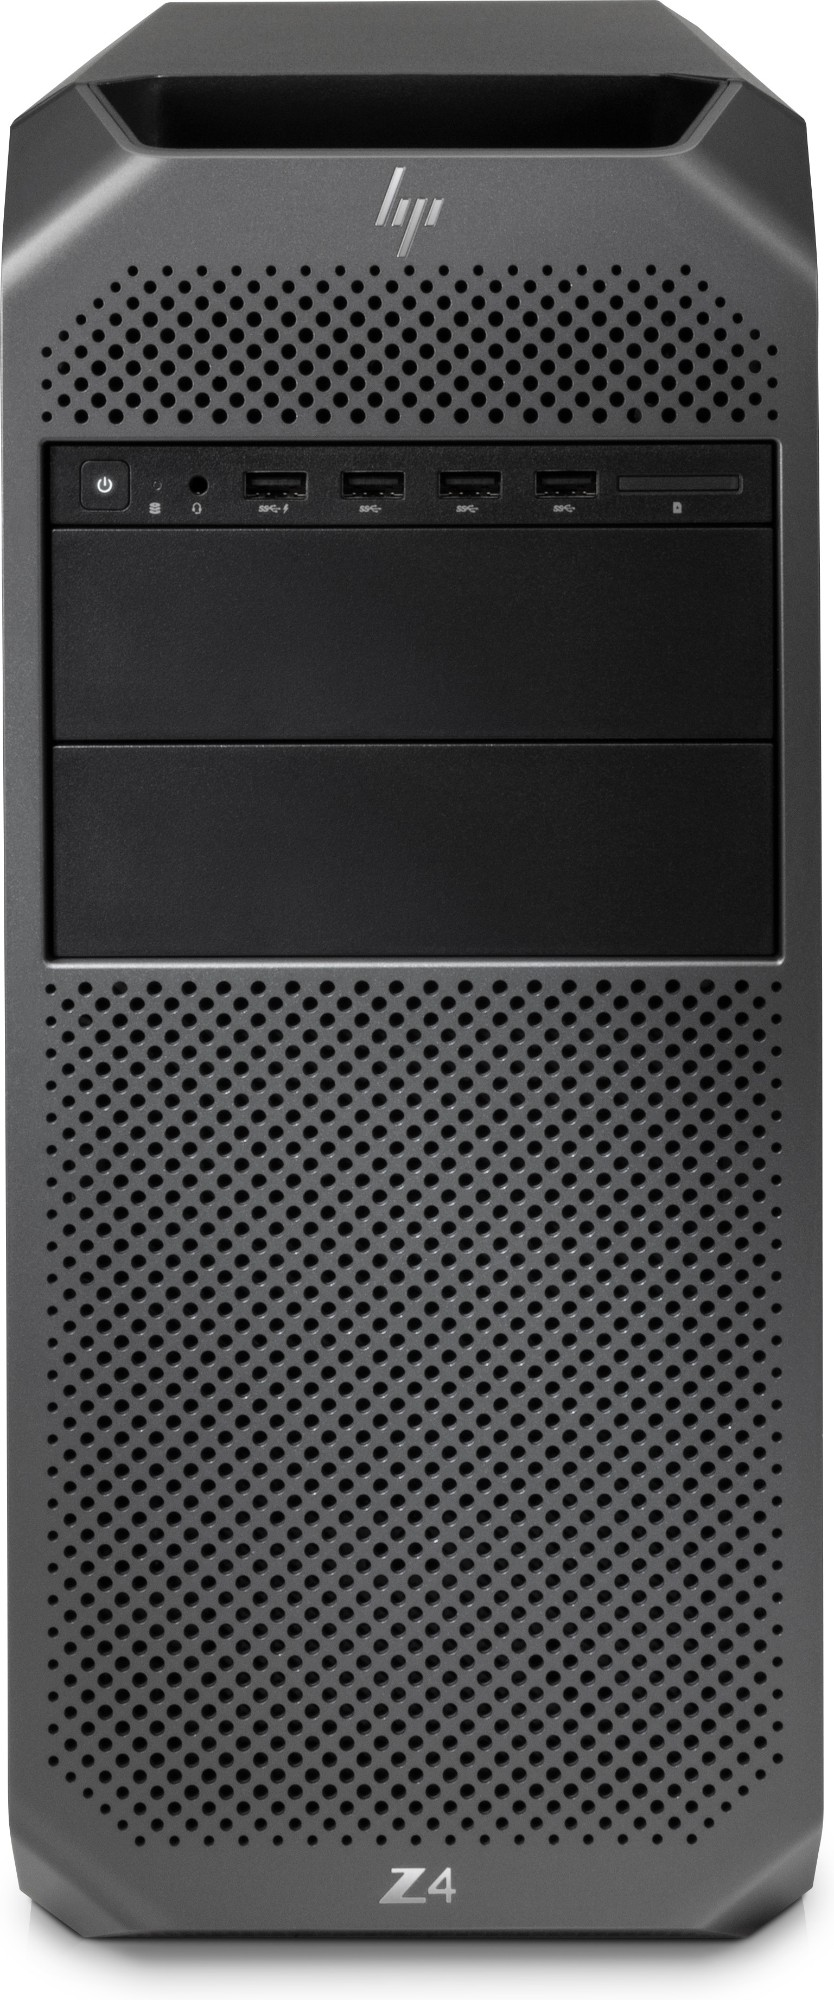 HP Z4 G4 Intel® Core™ i9 X-series i9-9820X 16 GB DDR4-SDRAM 512 GB SSD Mini Tower Black Workstation Windows 10 Pro for Workstations